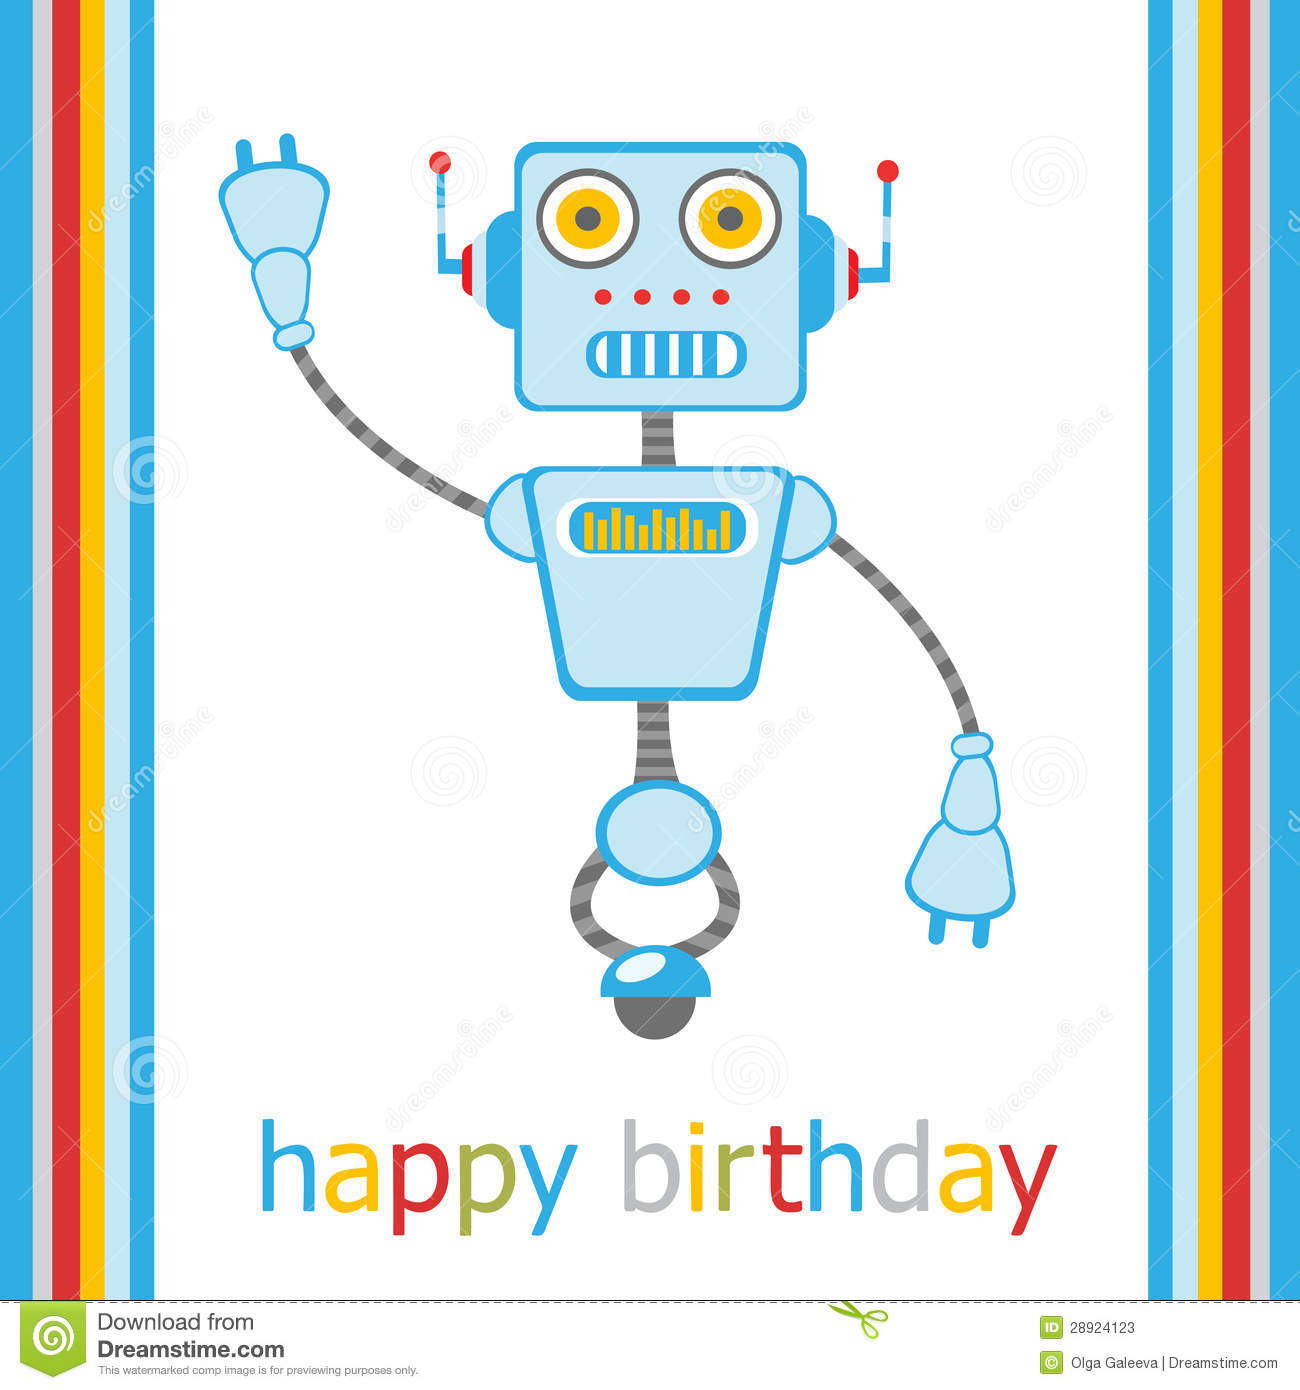 Happy birthday robot pdf writer